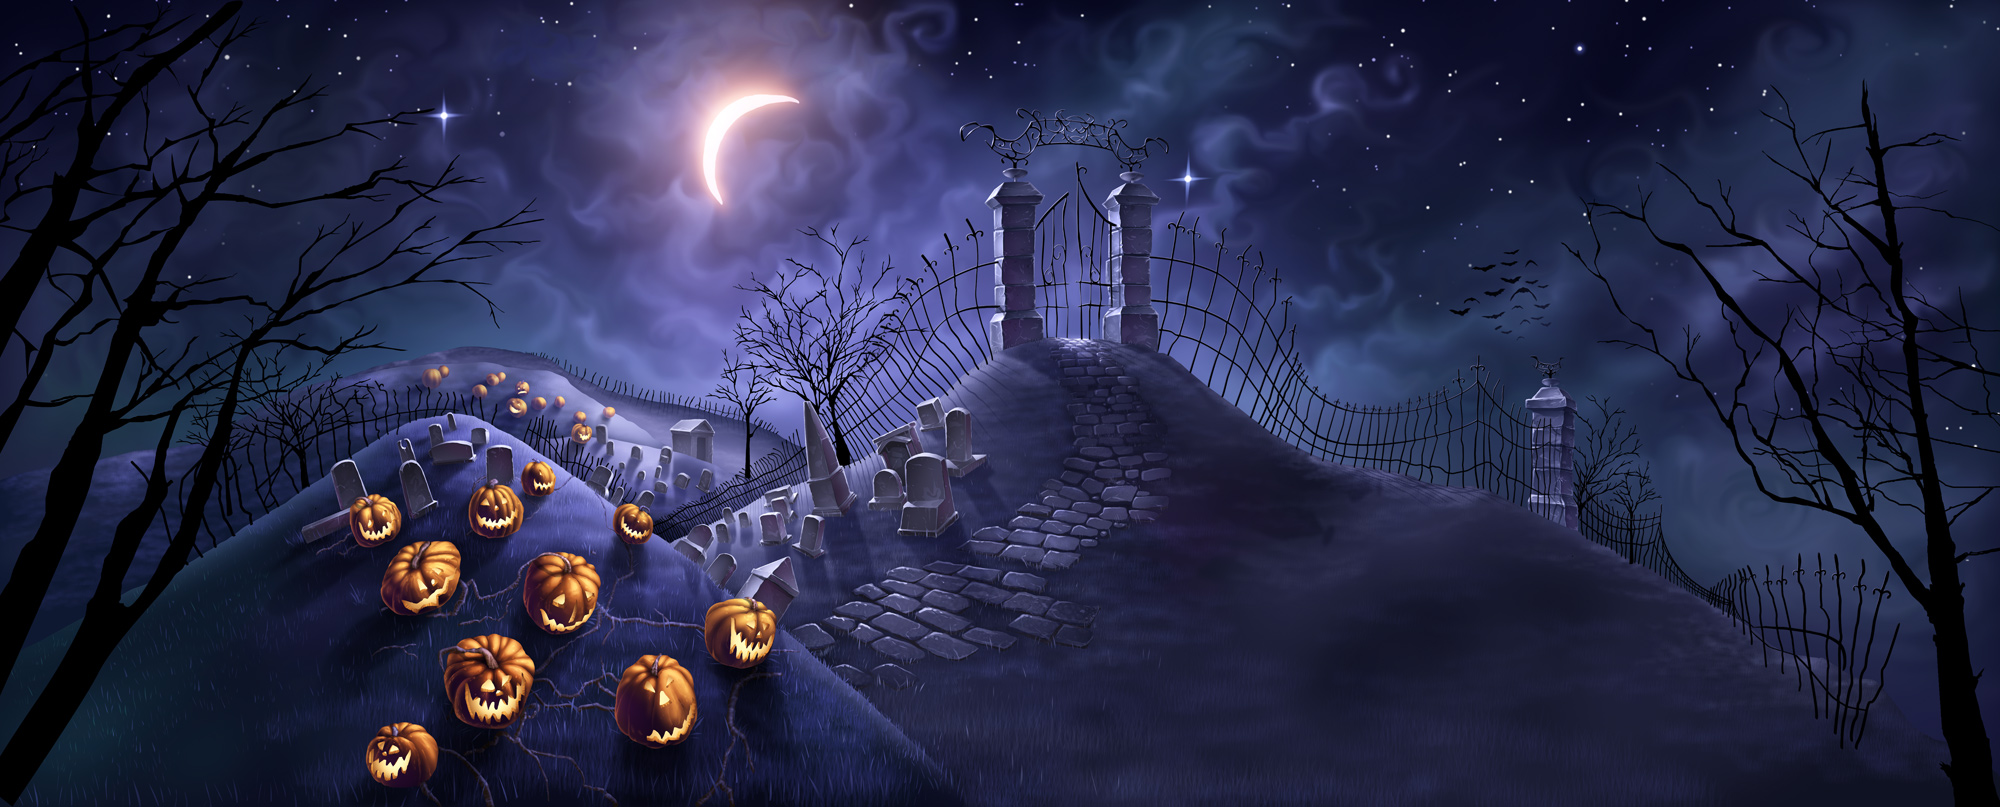 free scary halloween backgrounds wallpaper collection 2014 creepy halloween wallpapers wallpapersafari - Free Scary Halloween Images